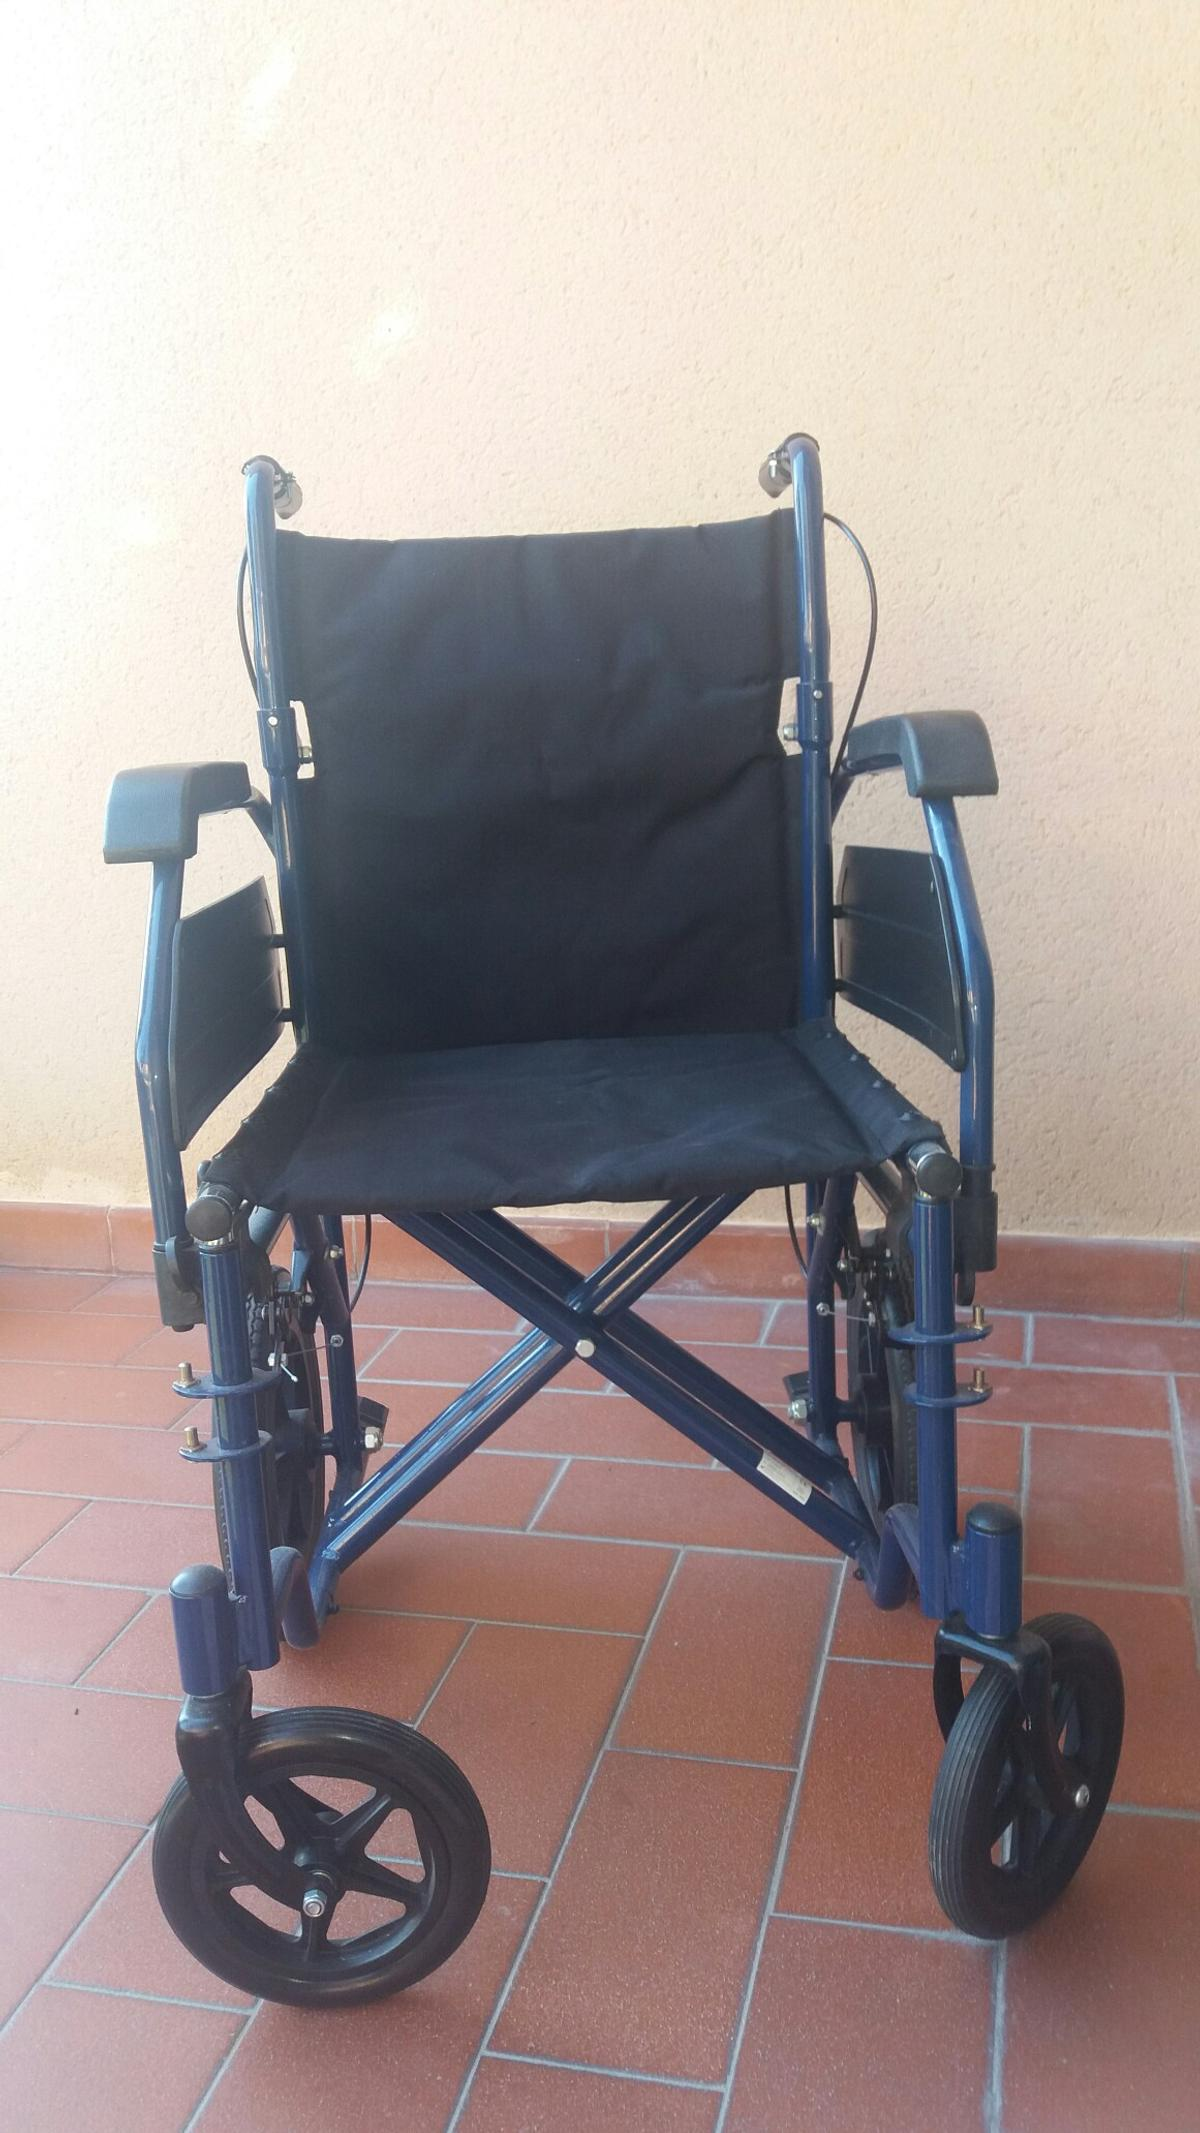 Carrozzina Sedia A Rotelle In 56038 Ponsacco For 180 00 For Sale Shpock